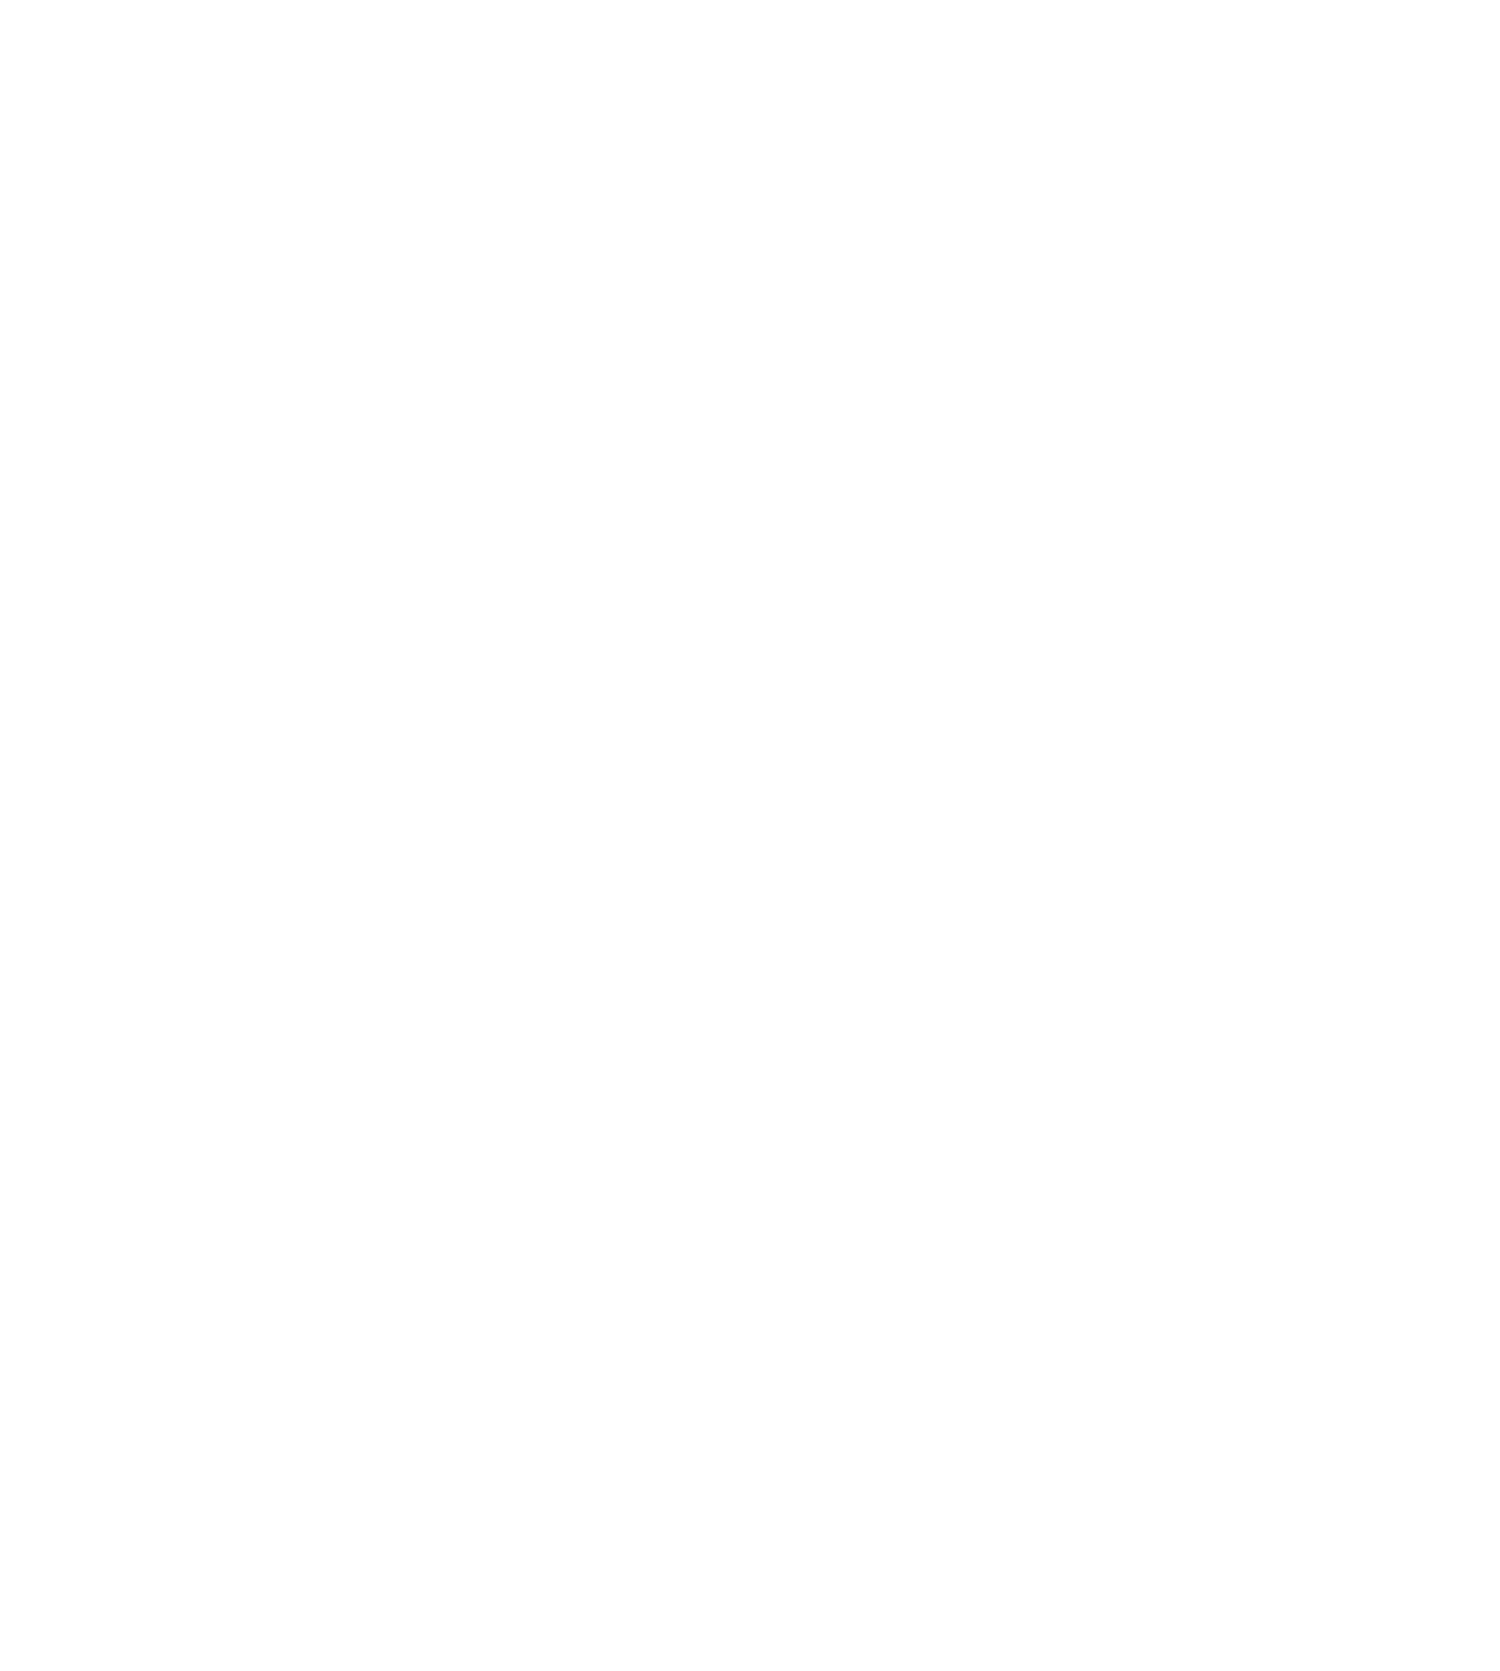 Black Platinum Illusions LLC